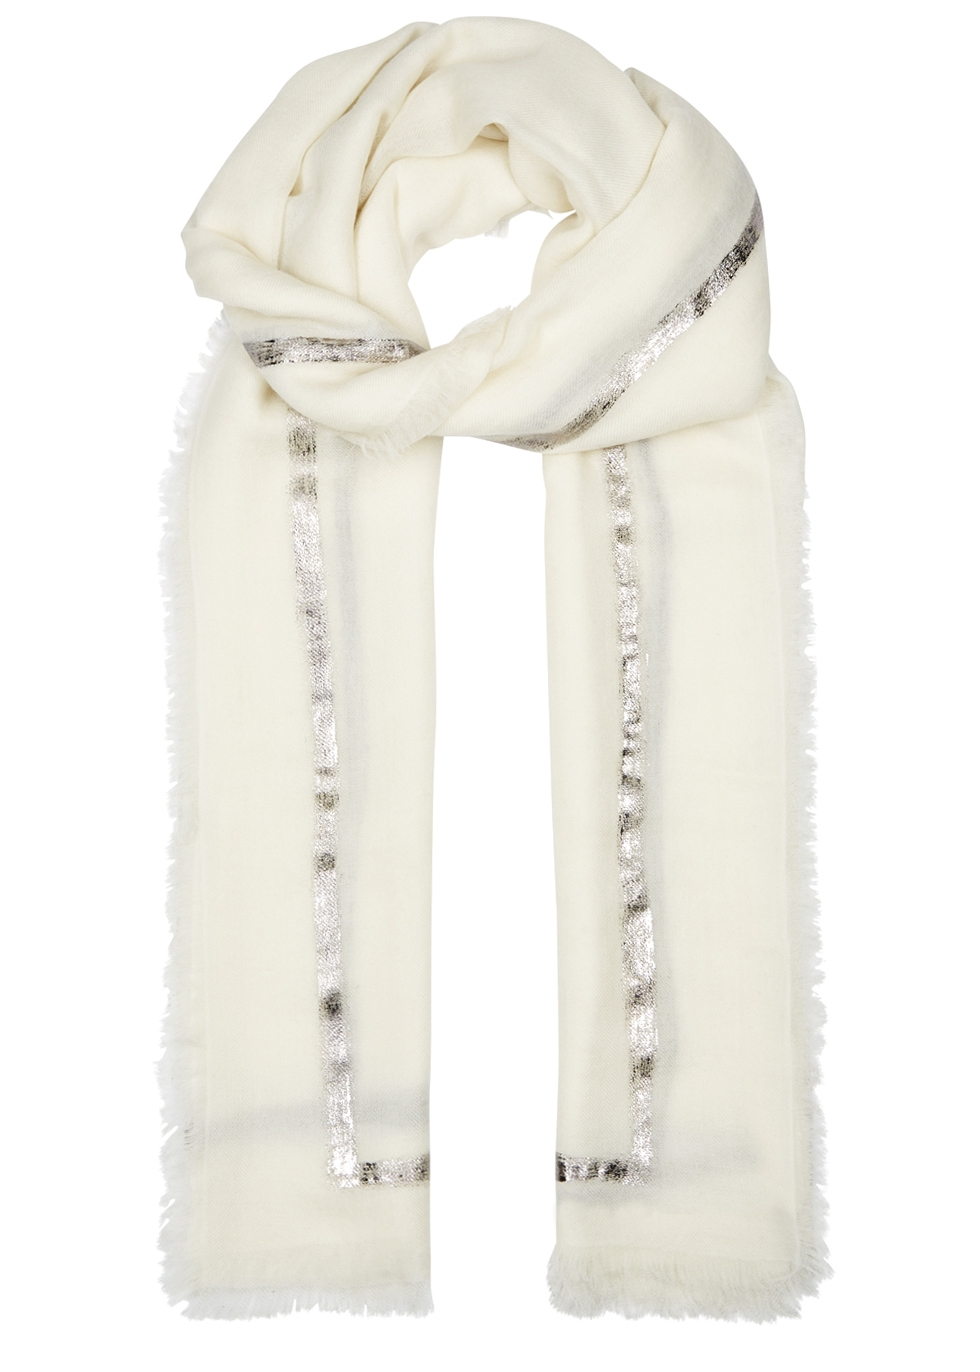 AMA PURE Righino Foil-Print Cashmere Scarf in White